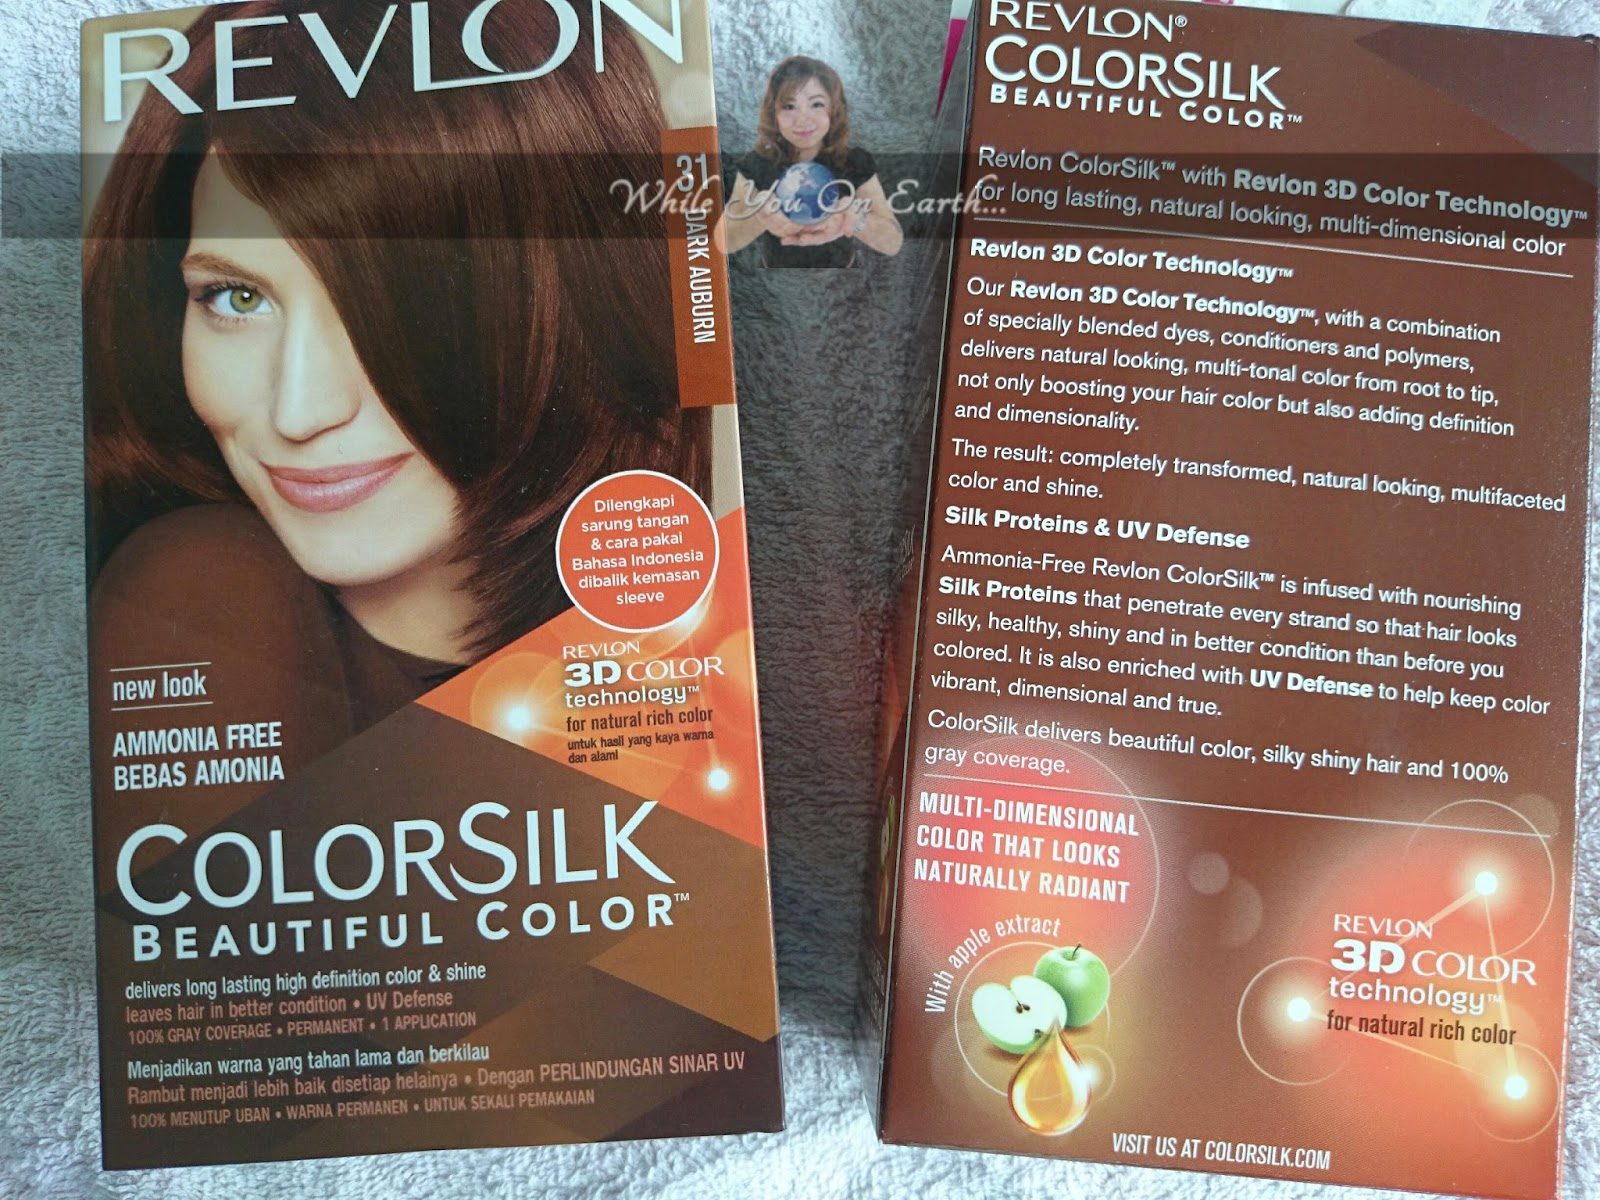 Revlon Color Technology Delivers High Definition And Shine With Uv Defense Multi Dimensional Colors That Looks Radiant Rich